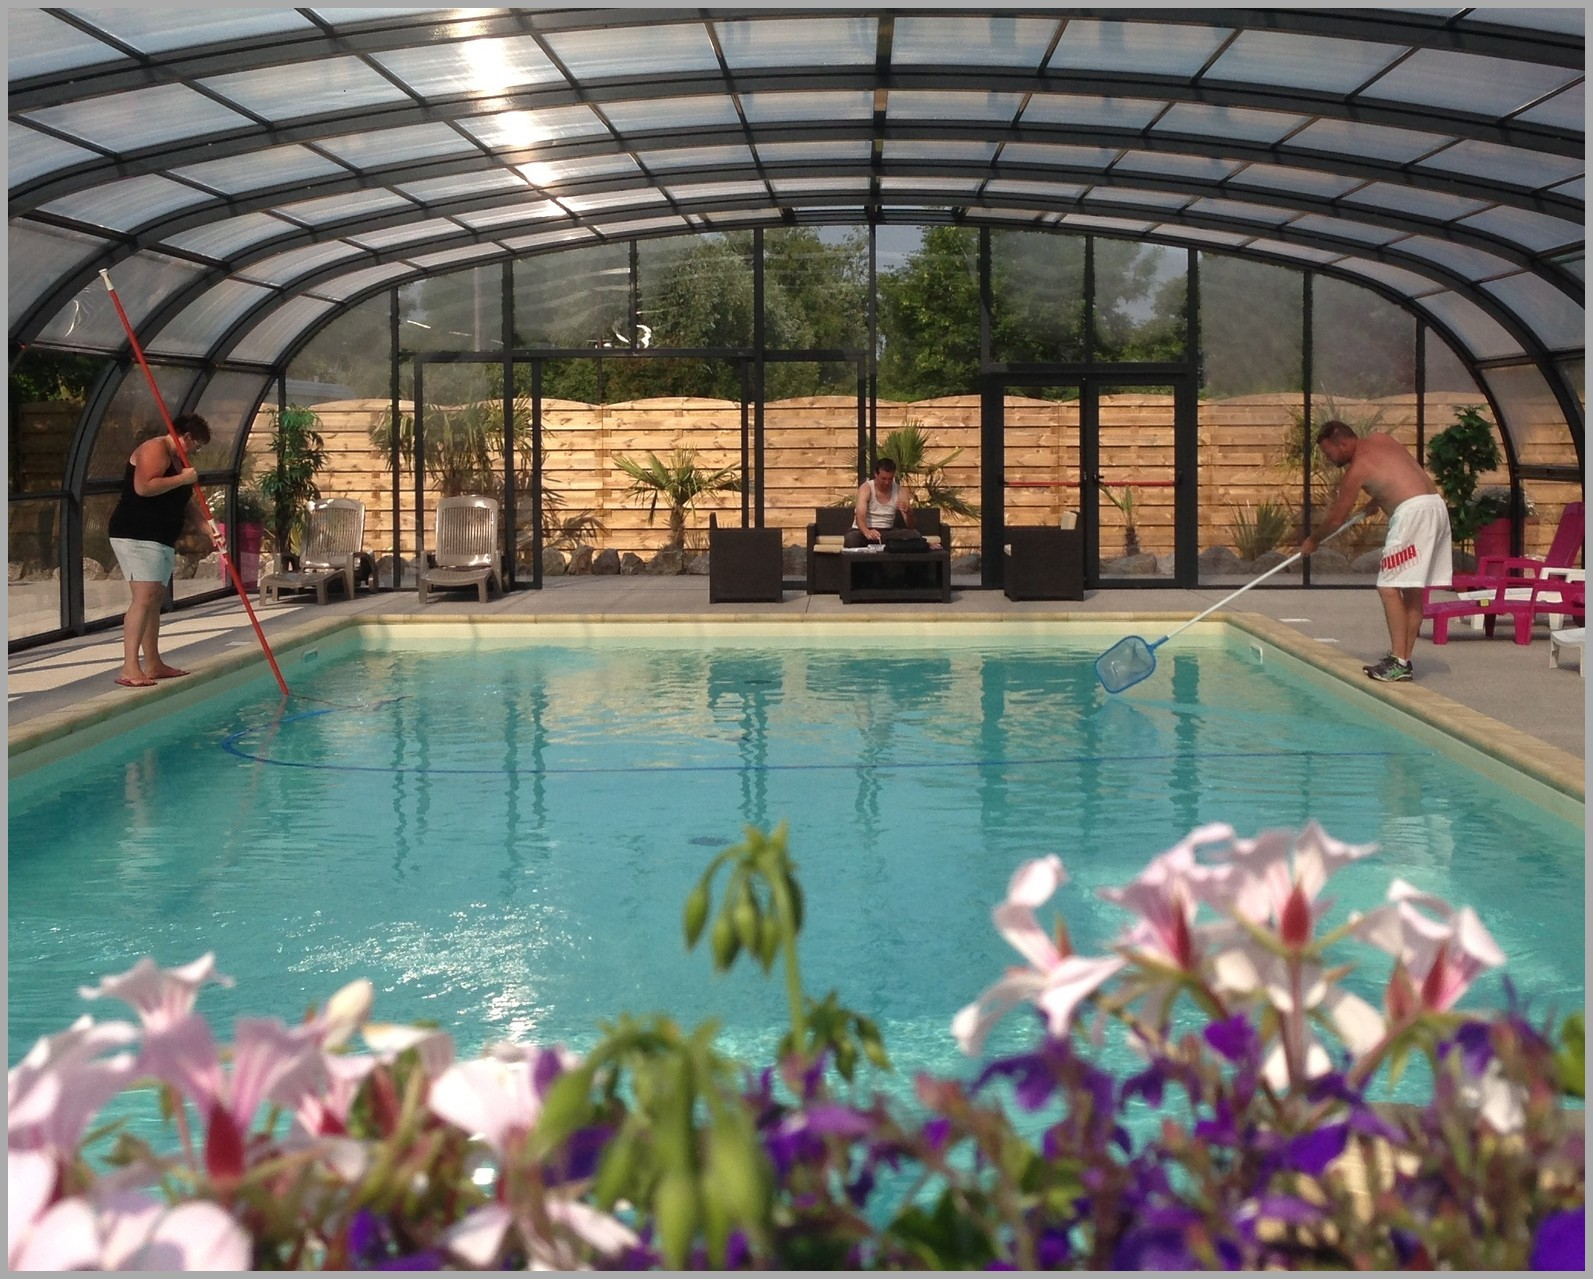 Camping baie de somme piscine couverte